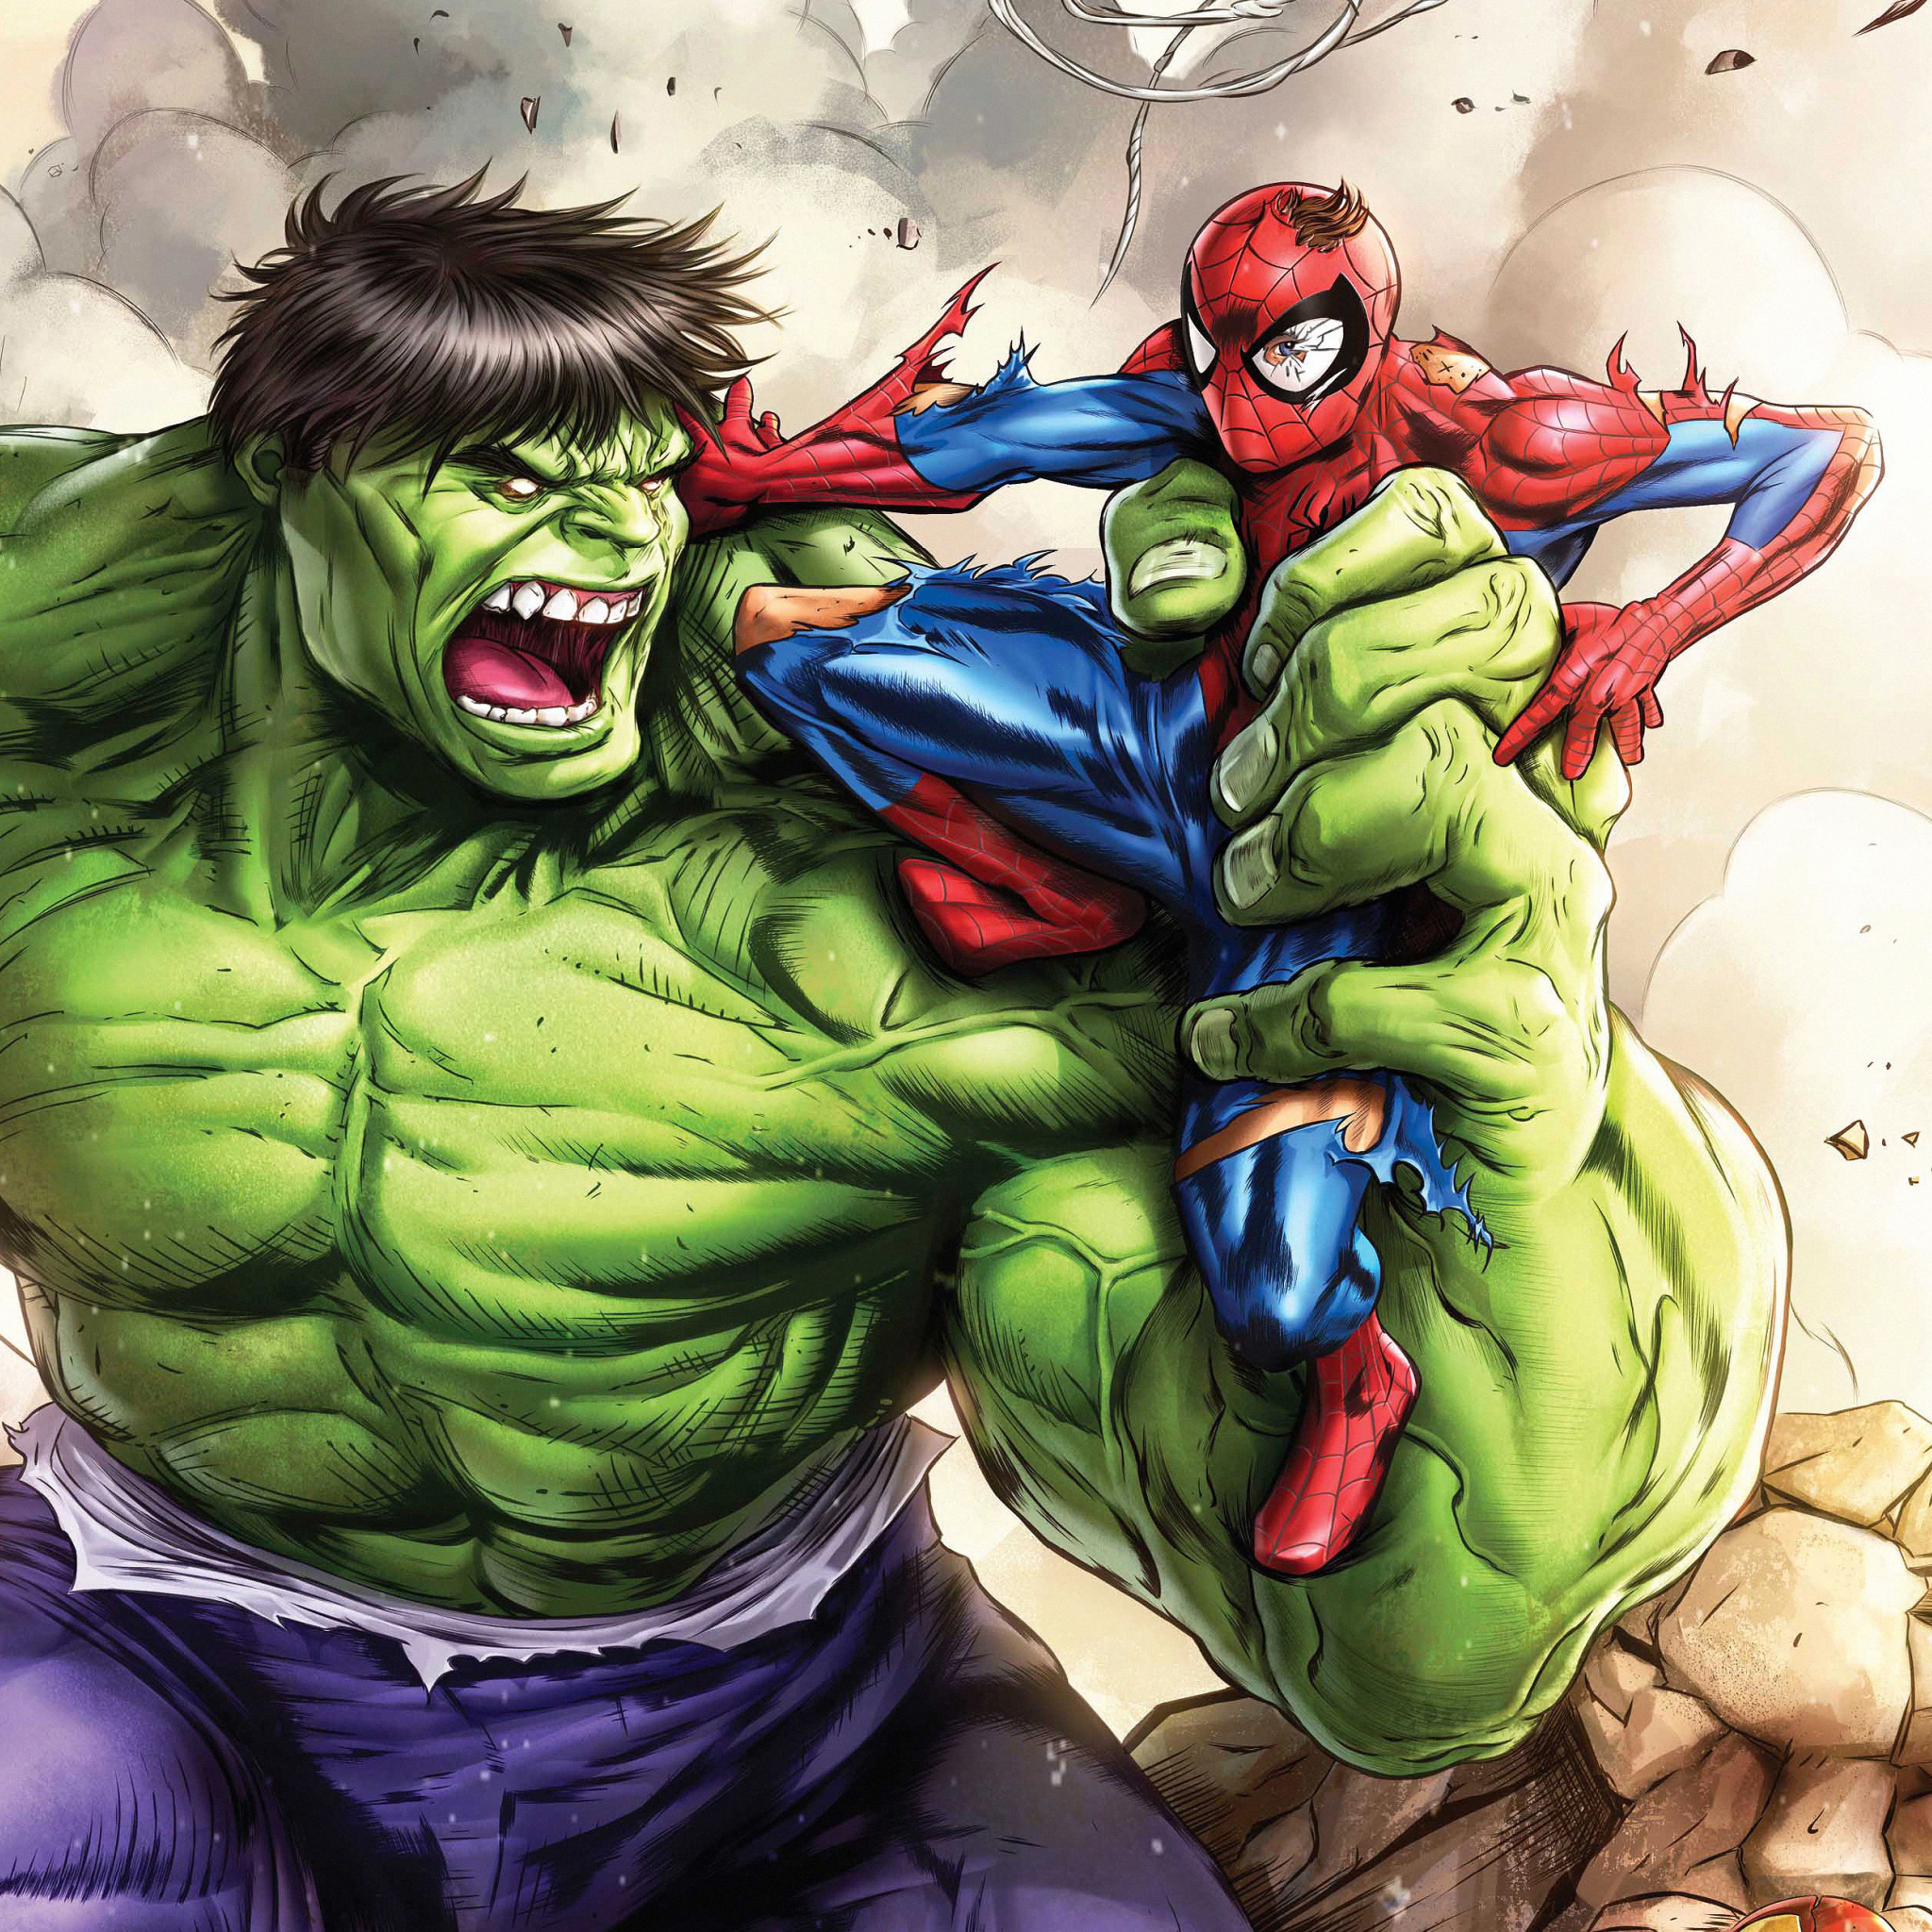 2048x2048 Hulk Vs Spiderman Art Ipad Air Wallpaper, HD ...